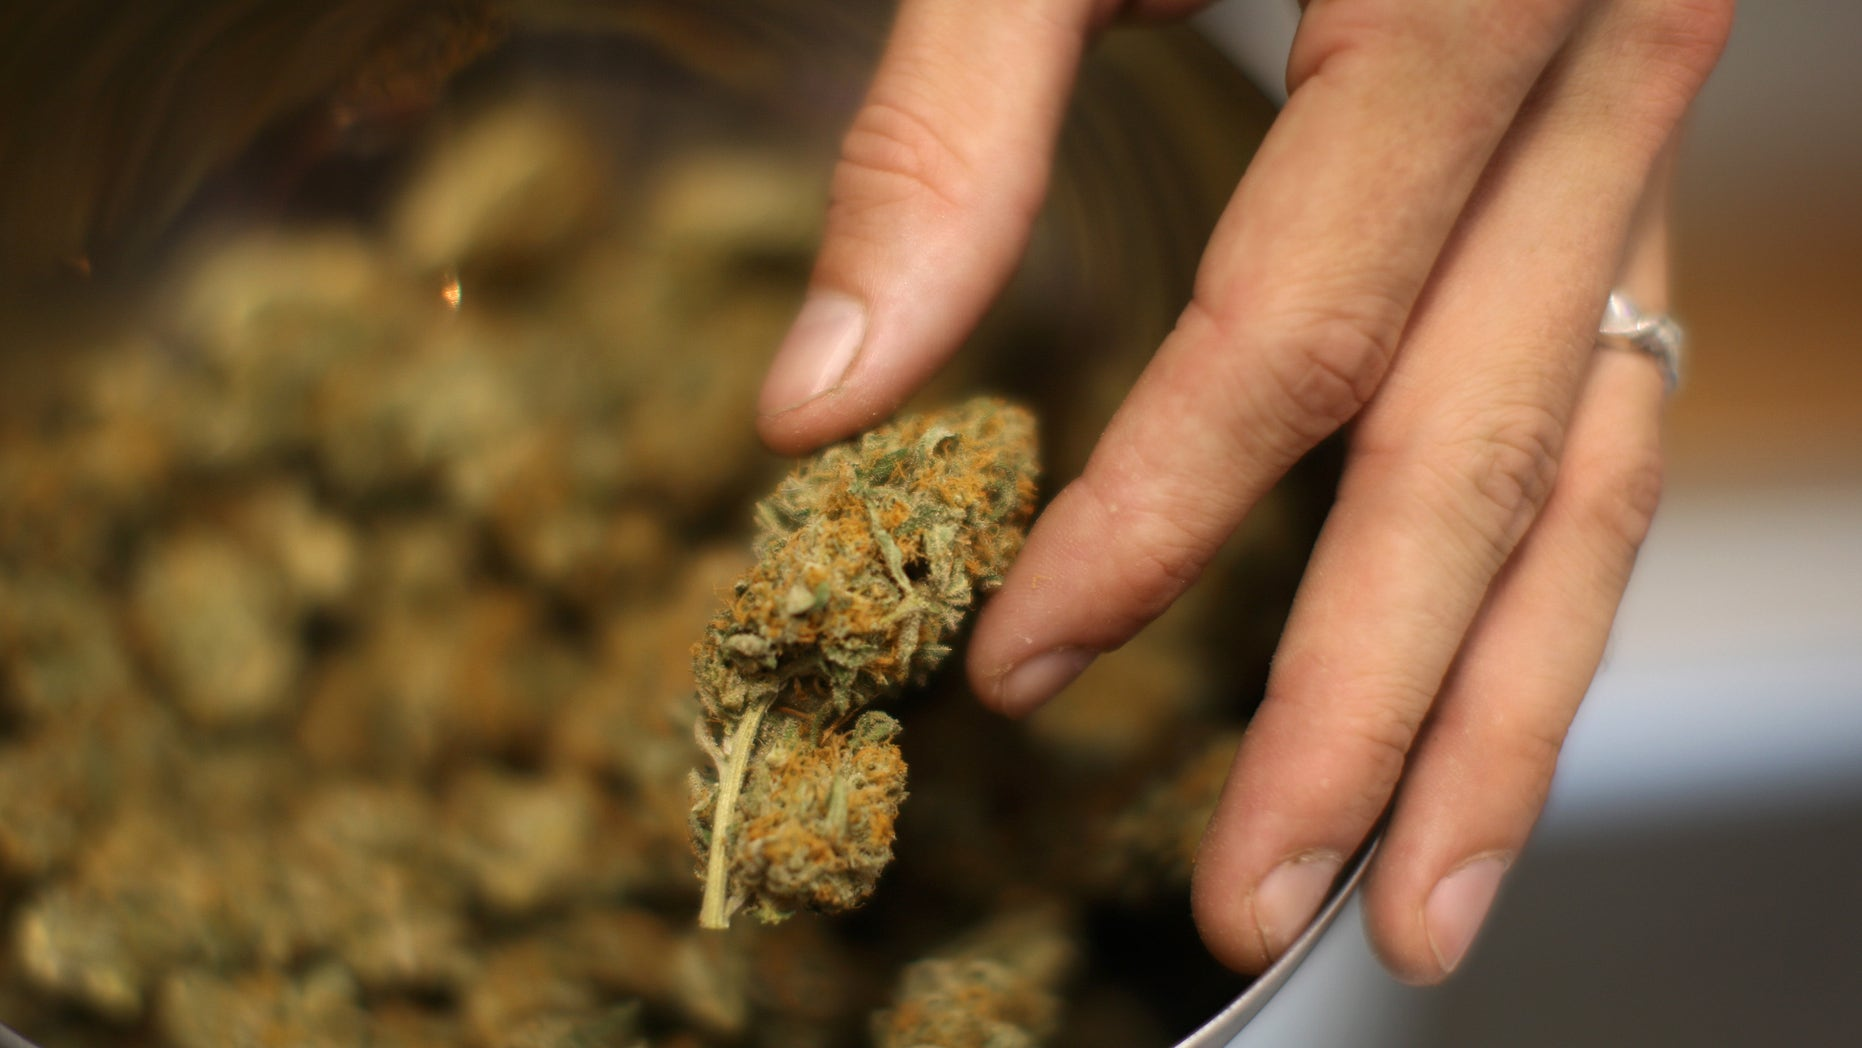 LOS ANGELES, CA - SEPTEMBER 7:  A budtender handles marijuana at Perennial Holistic Wellness Center, a not-for-profit medical marijuana dispensary in operation since 2006, on September 7, 2012 in Los Angeles, California. A group of activists have submitted about 50,000 signatures in an effort to force a referendum on a marijuana dispensary ban in Los Angeles to take effect next week. A minimum of 27,425 valid signatures from registered voters is needed to let voters decide on the issue in March, and until the number can be verified, the ban will not be enforced. . The ban would not prevent patients or cooperatives of two or three people to grow their own in small amounts. Californians voted to legalize medical cannabis use in 1996, clashing with federal drug laws.   (Photo by David McNew/Getty Images)